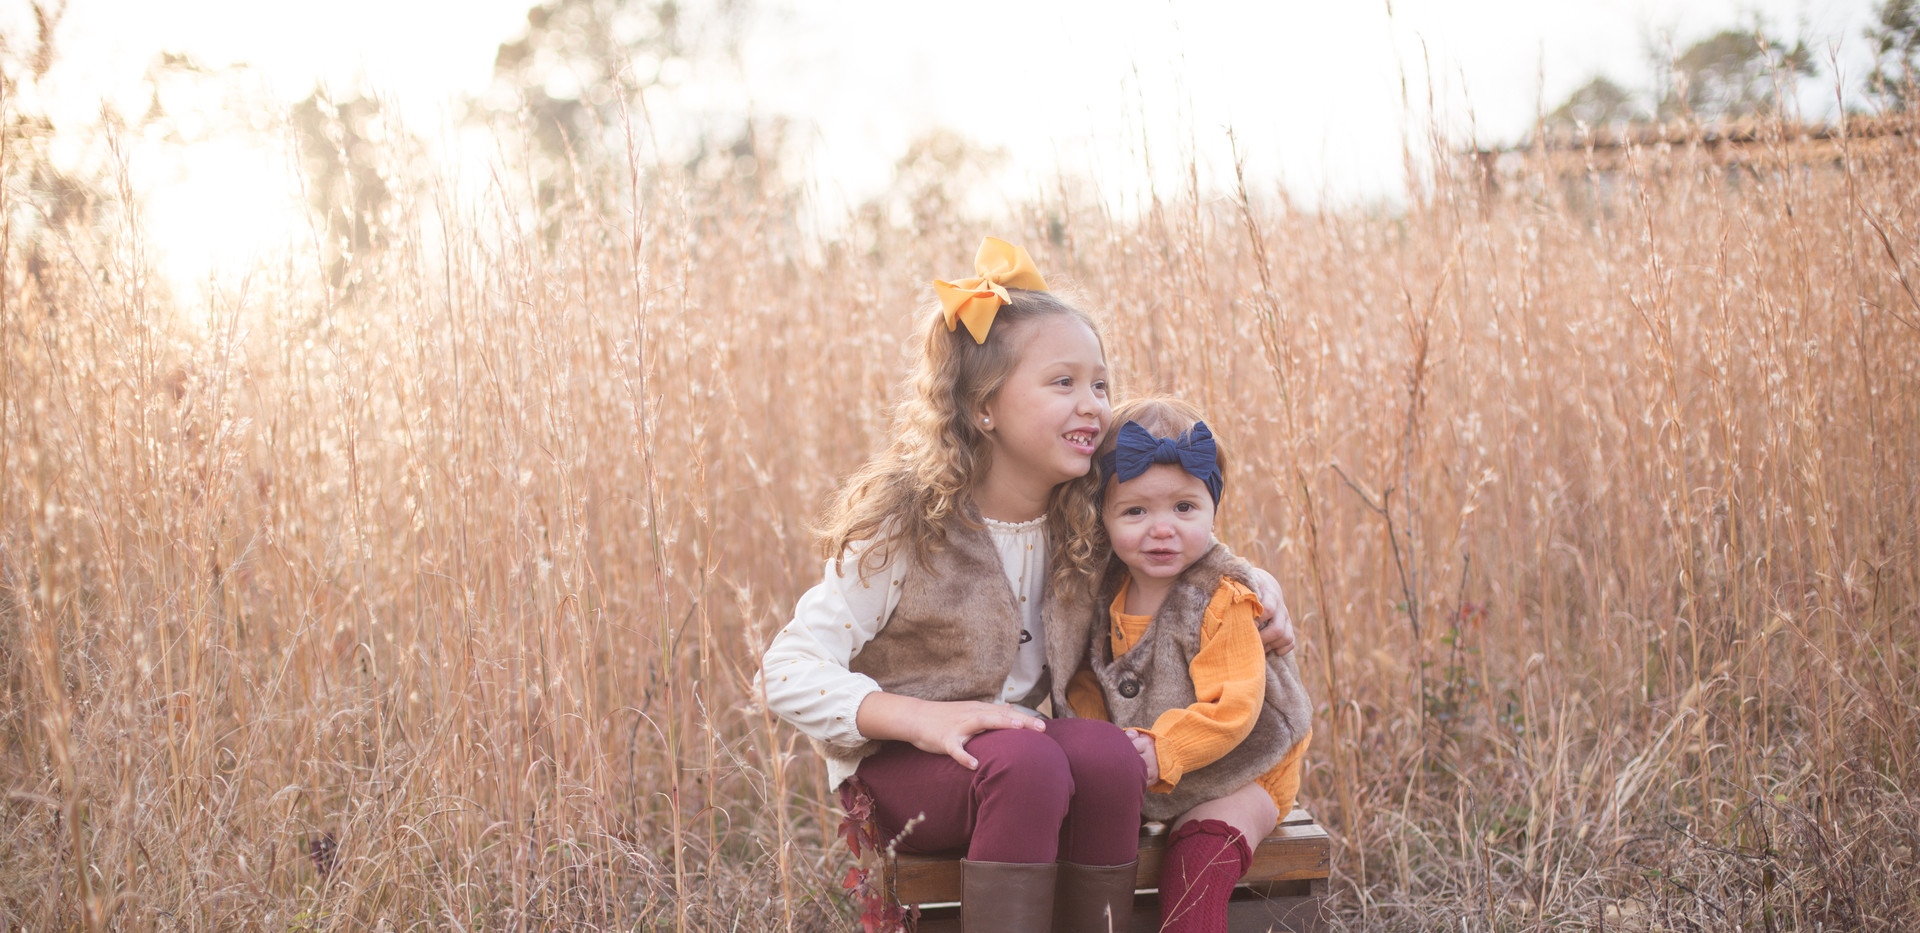 family photos Chattanooga TN, fall colors, tall grass